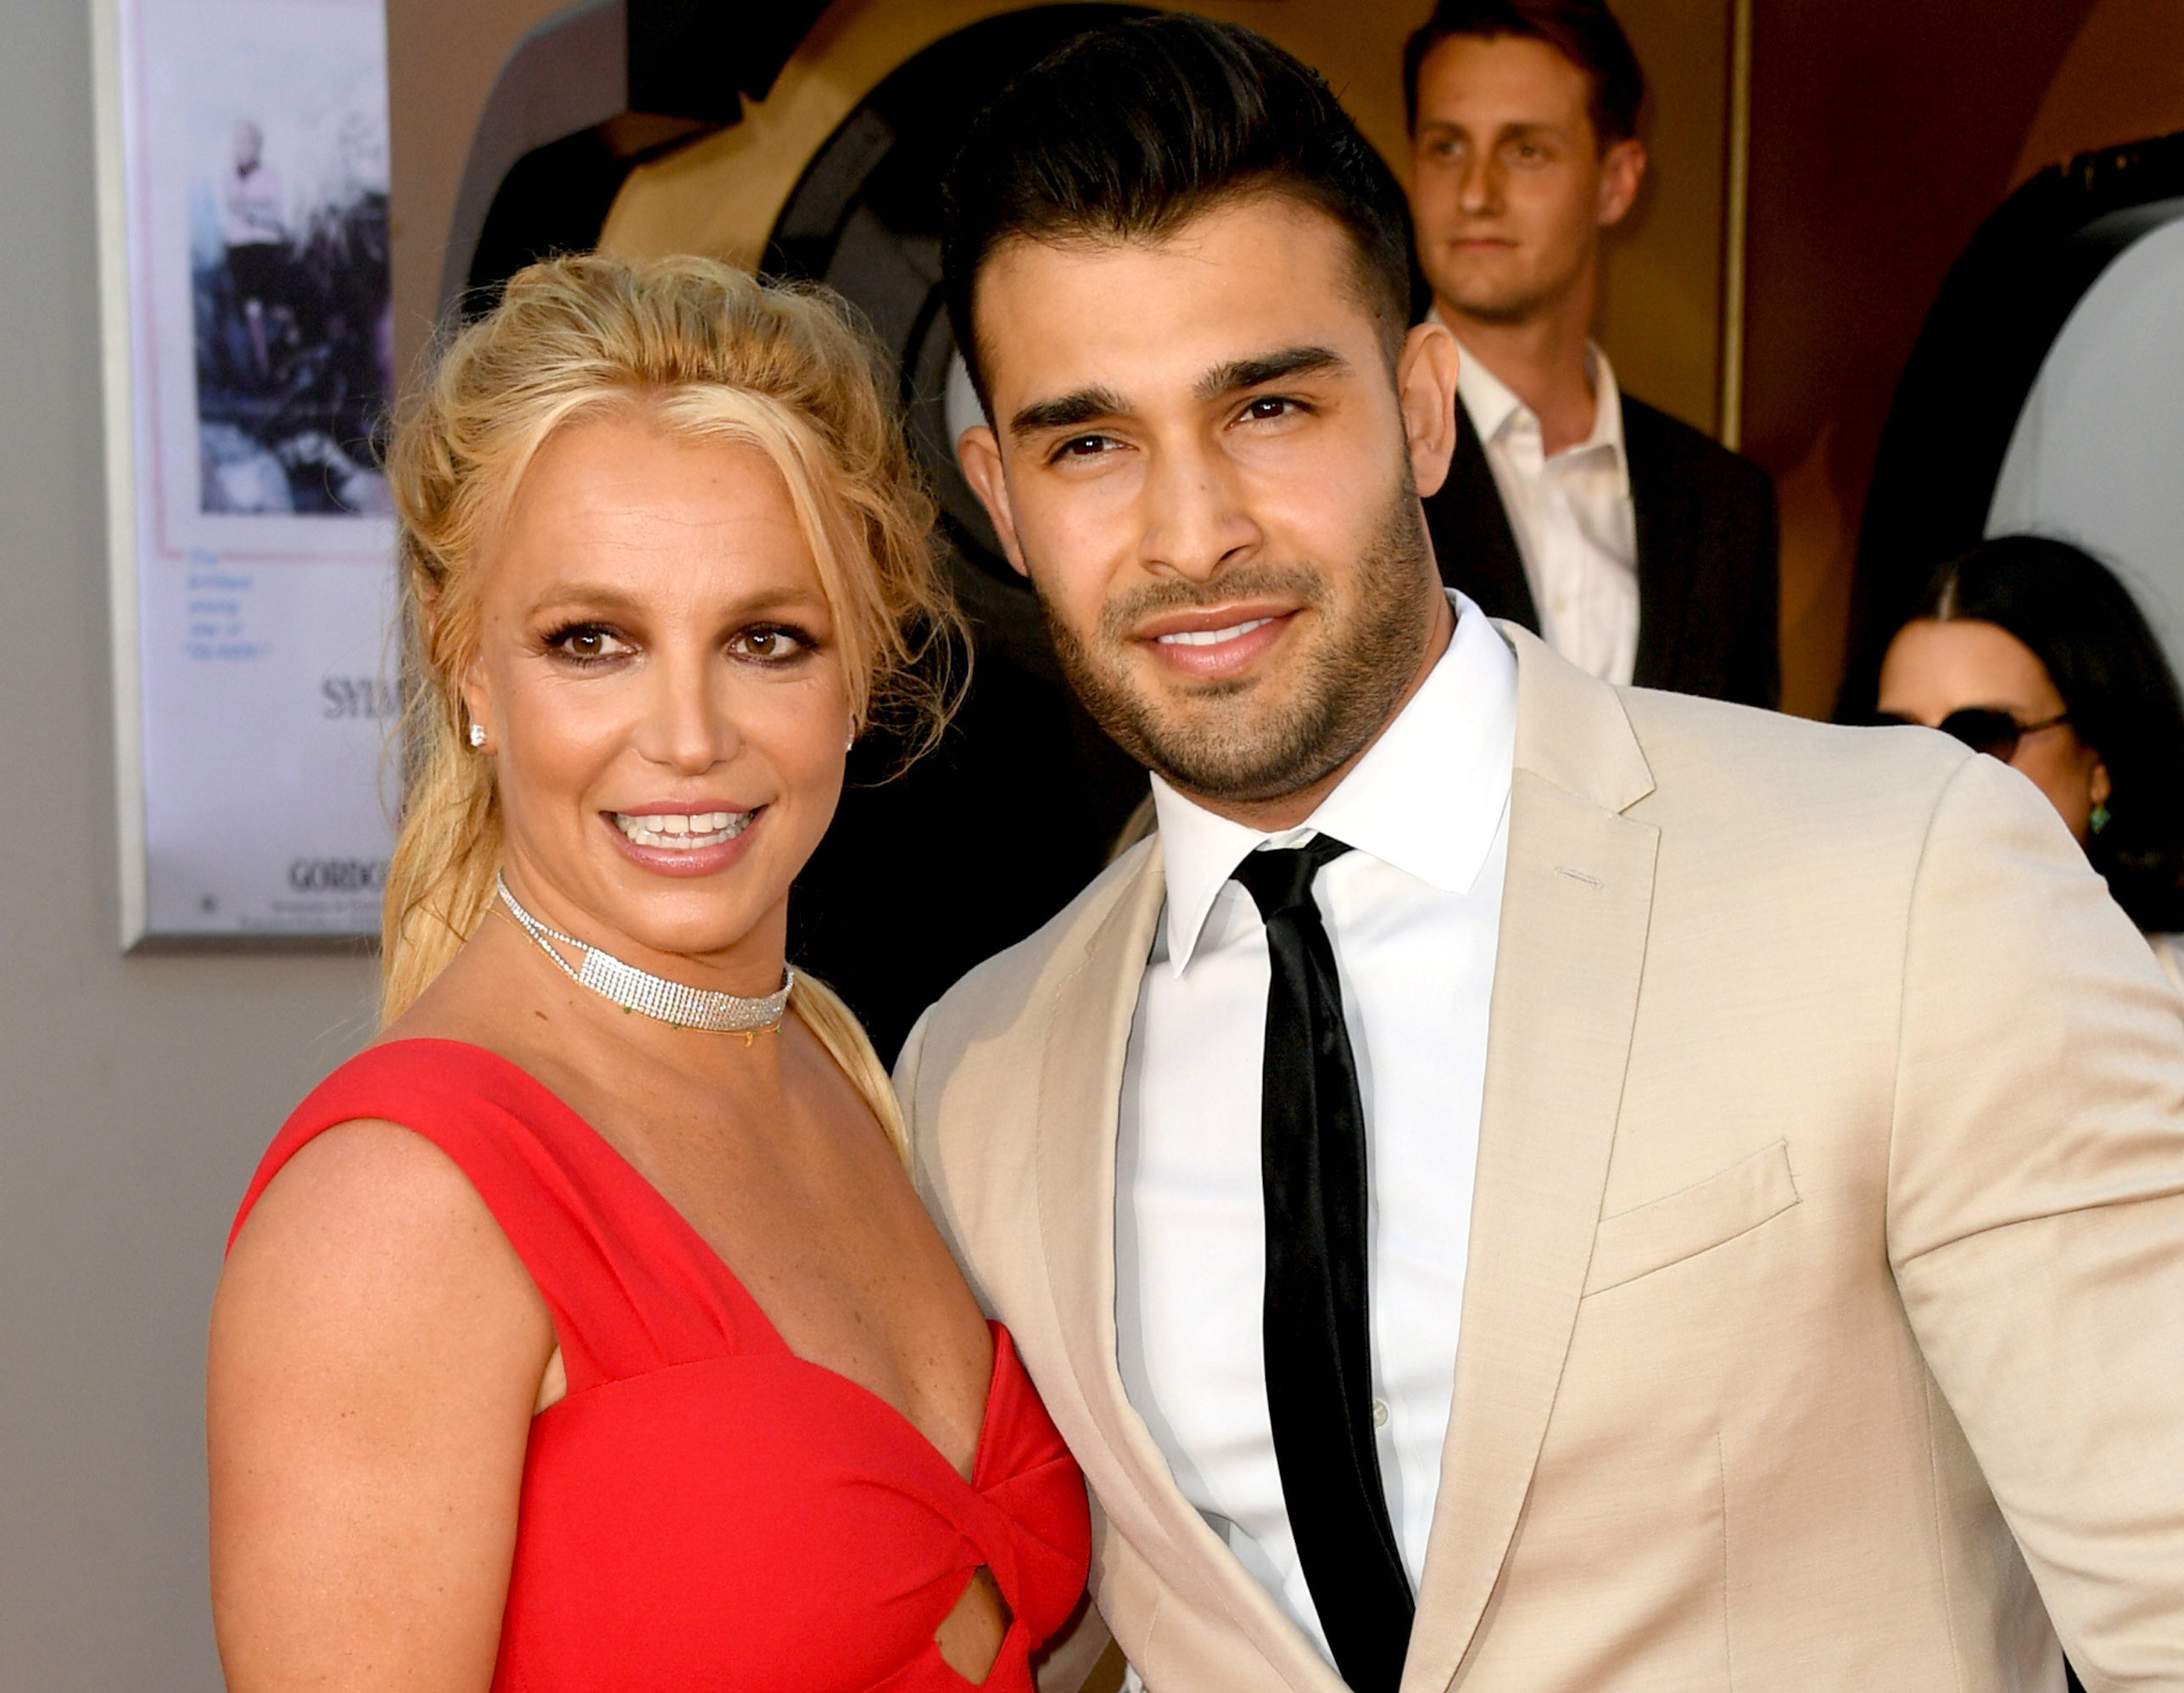 Britney and Sam pose together at an event